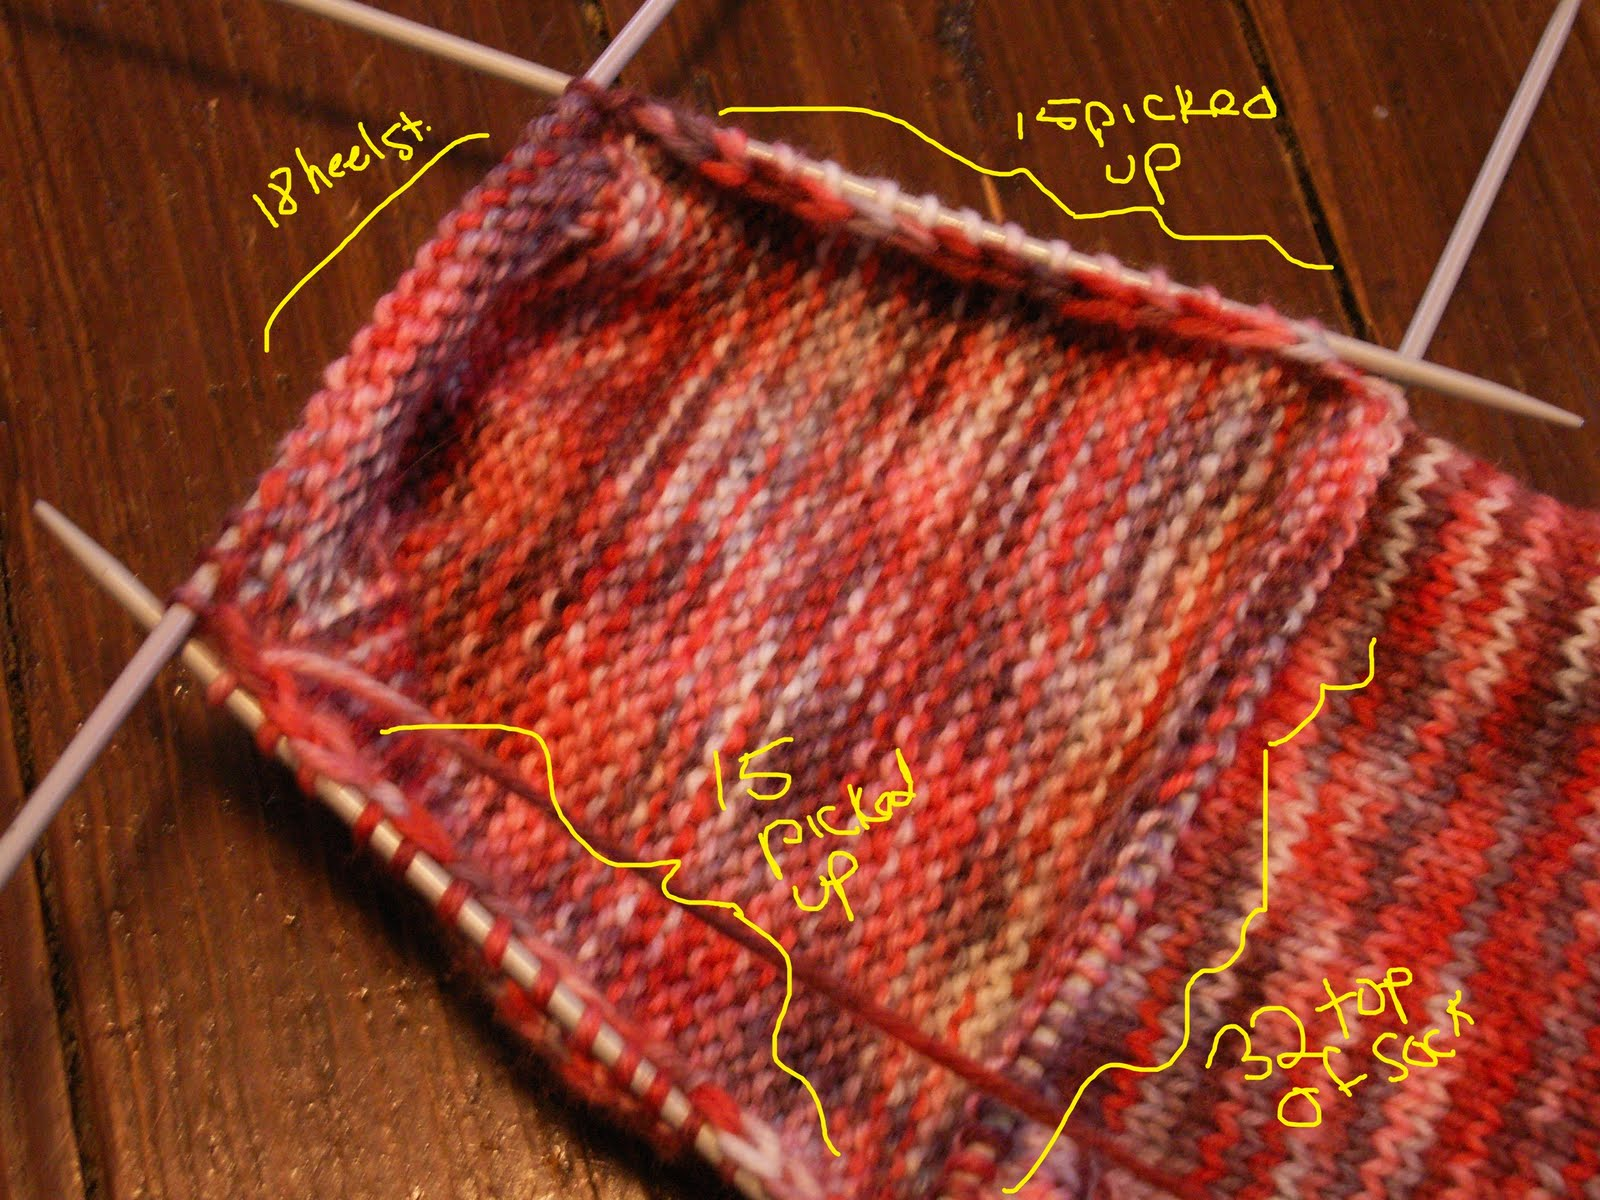 Knitting And Picking Up Stitches : Mistress of Knitting: Knitting Top-Down Socks, Part 3 - Picking up stitches f...